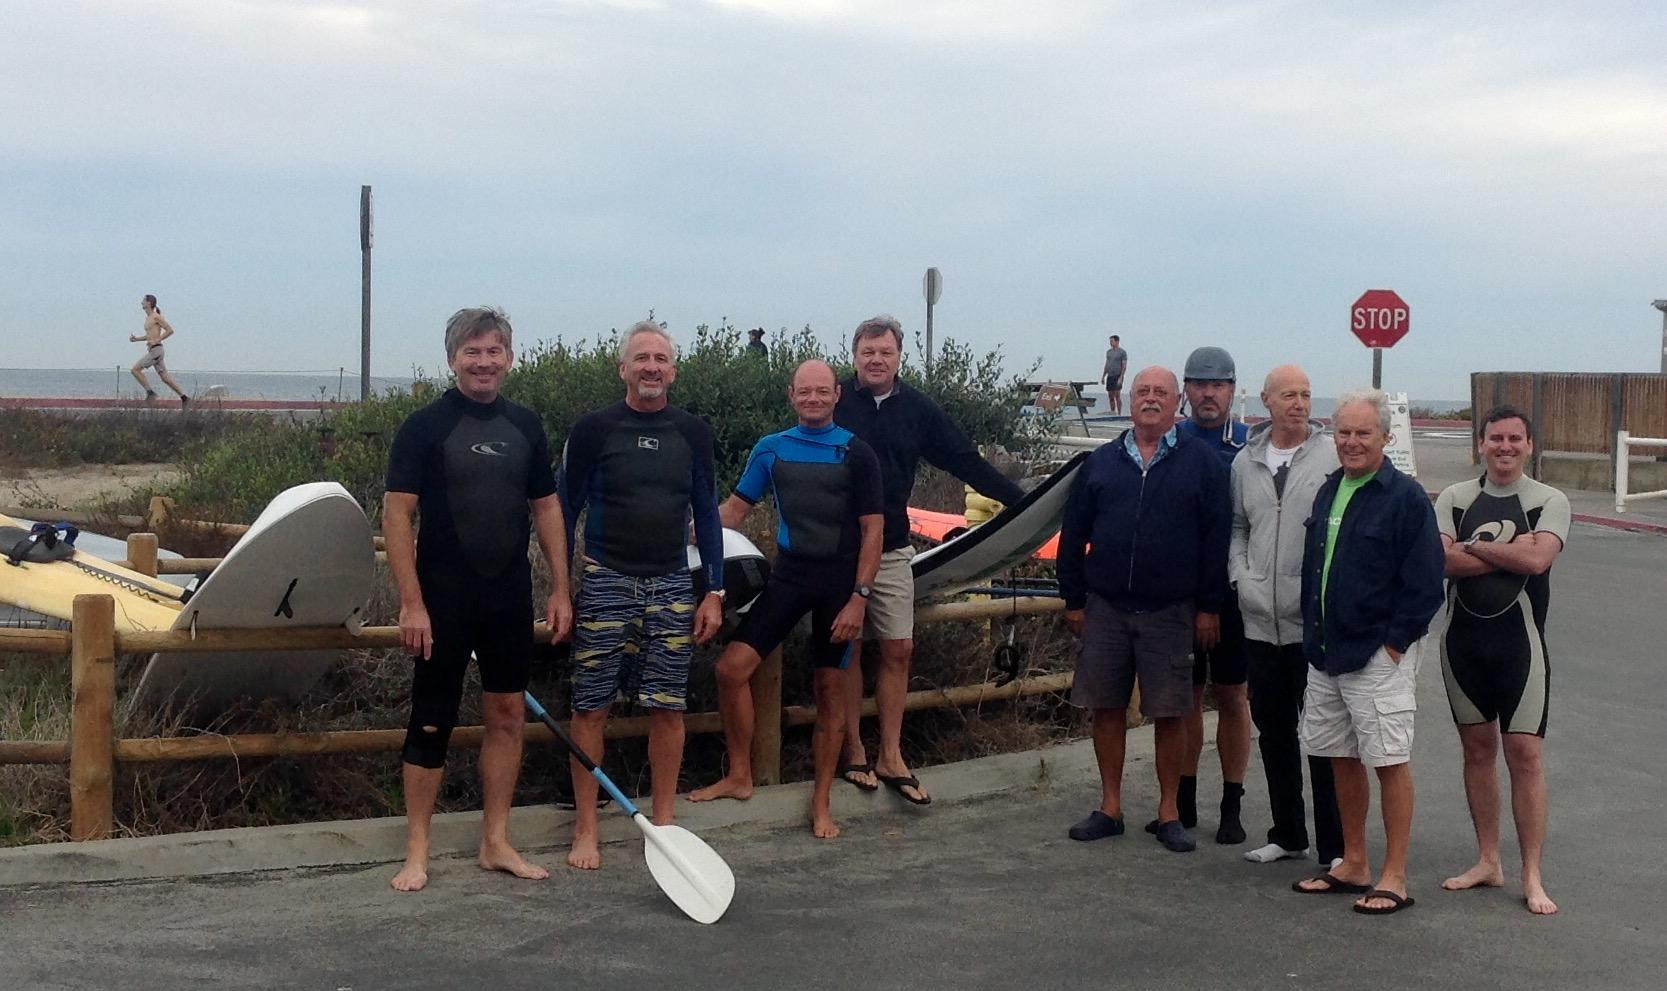 Sunday Oct.25, 2015 - Fun session at Torrey Pines with (L to R) Andy,Fred (from Florida), Dom, Barry, Dick, Paul, Fred, Don, and Max (from San Francisco)